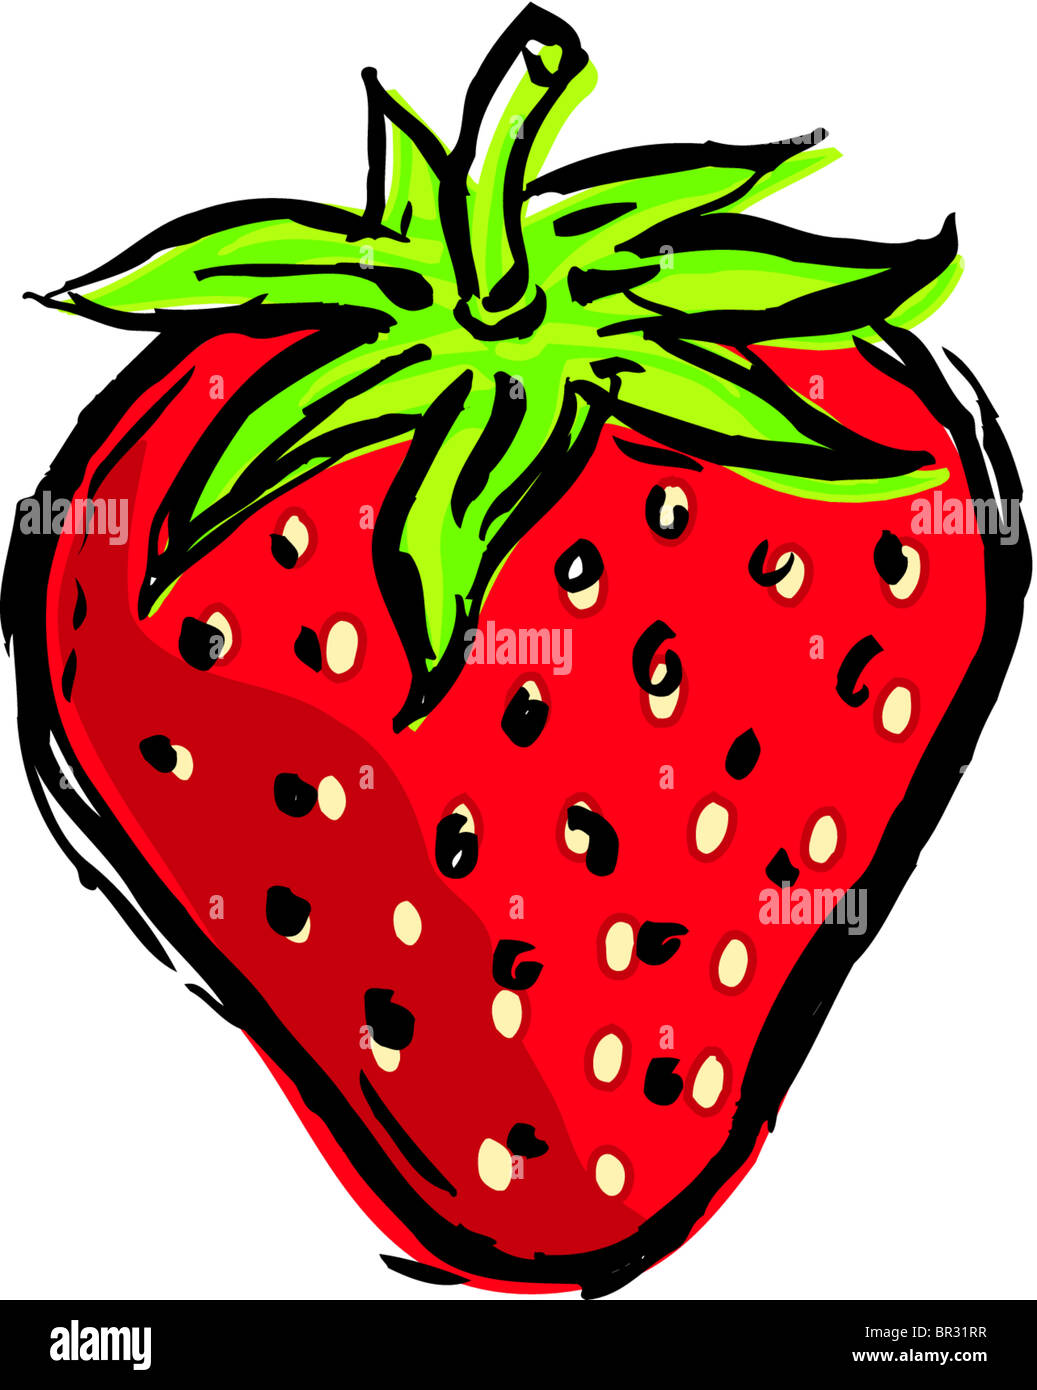 Strawberry Drawing Cute : strawberry, drawing, Strawberry, Drawing, Resolution, Stock, Photography, Images, Alamy